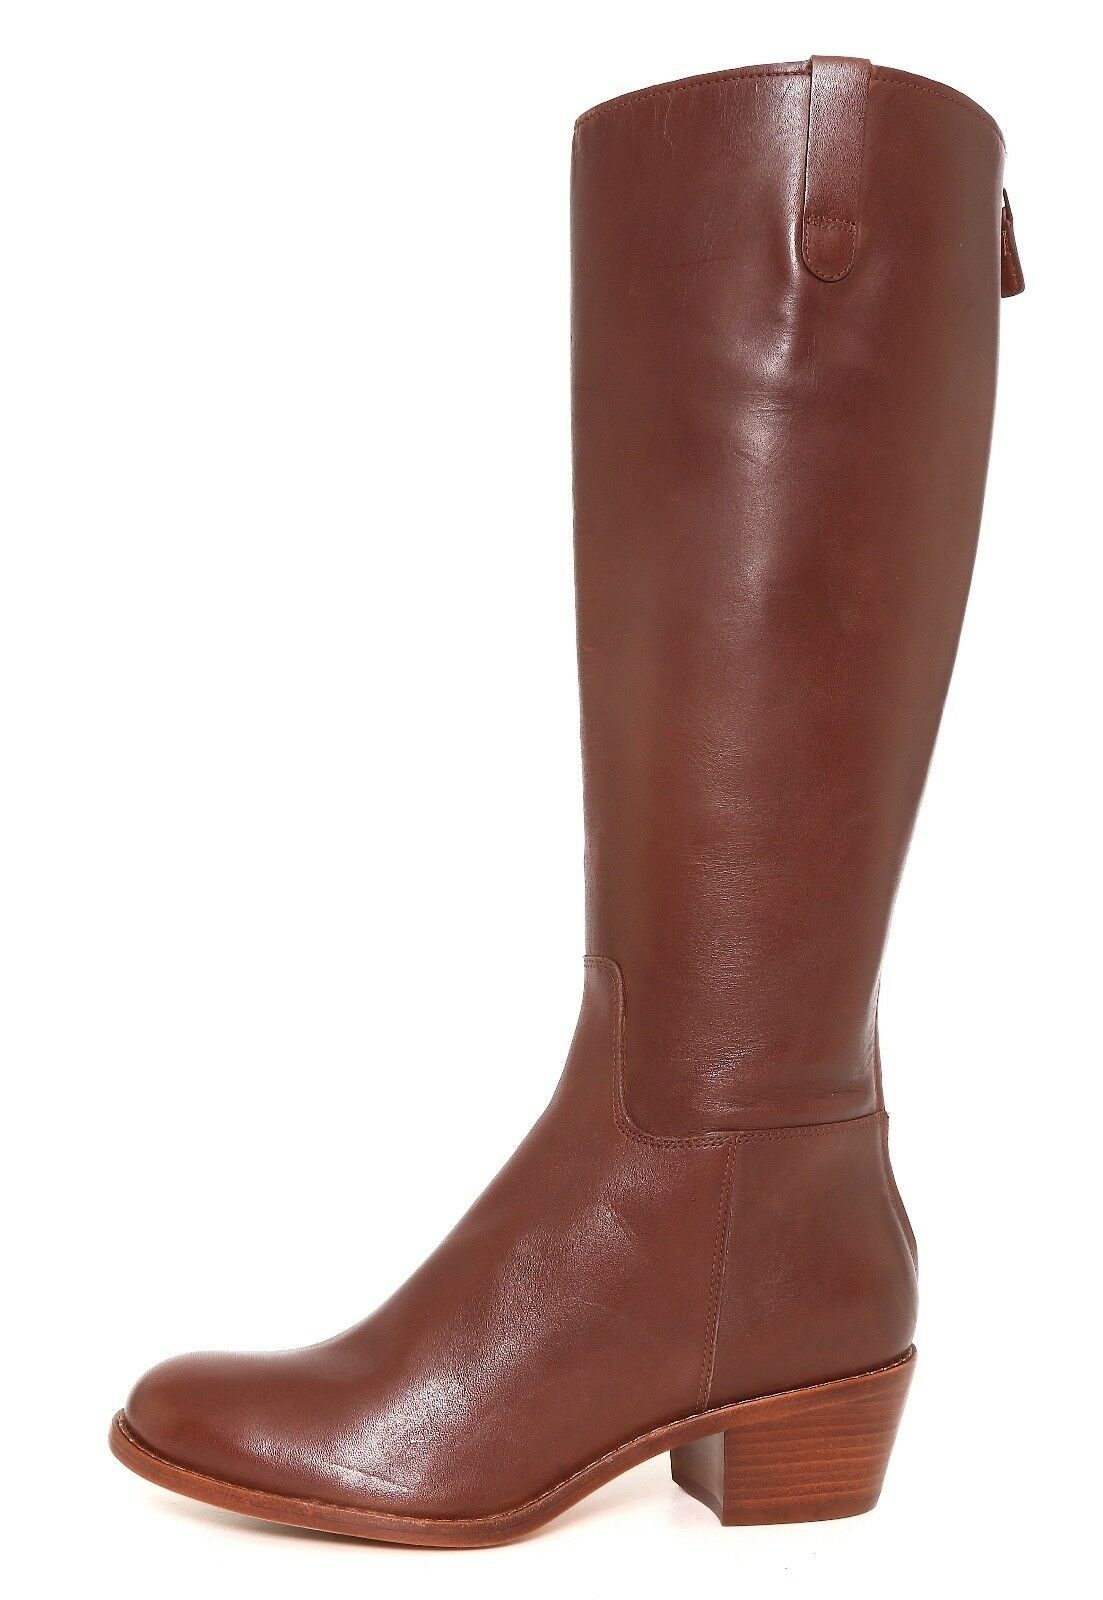 a buon mercato Cole Haan Wesley Wesley Wesley Leather Tall avvio Chestnut donna Sz 5.5 B 6680   economico